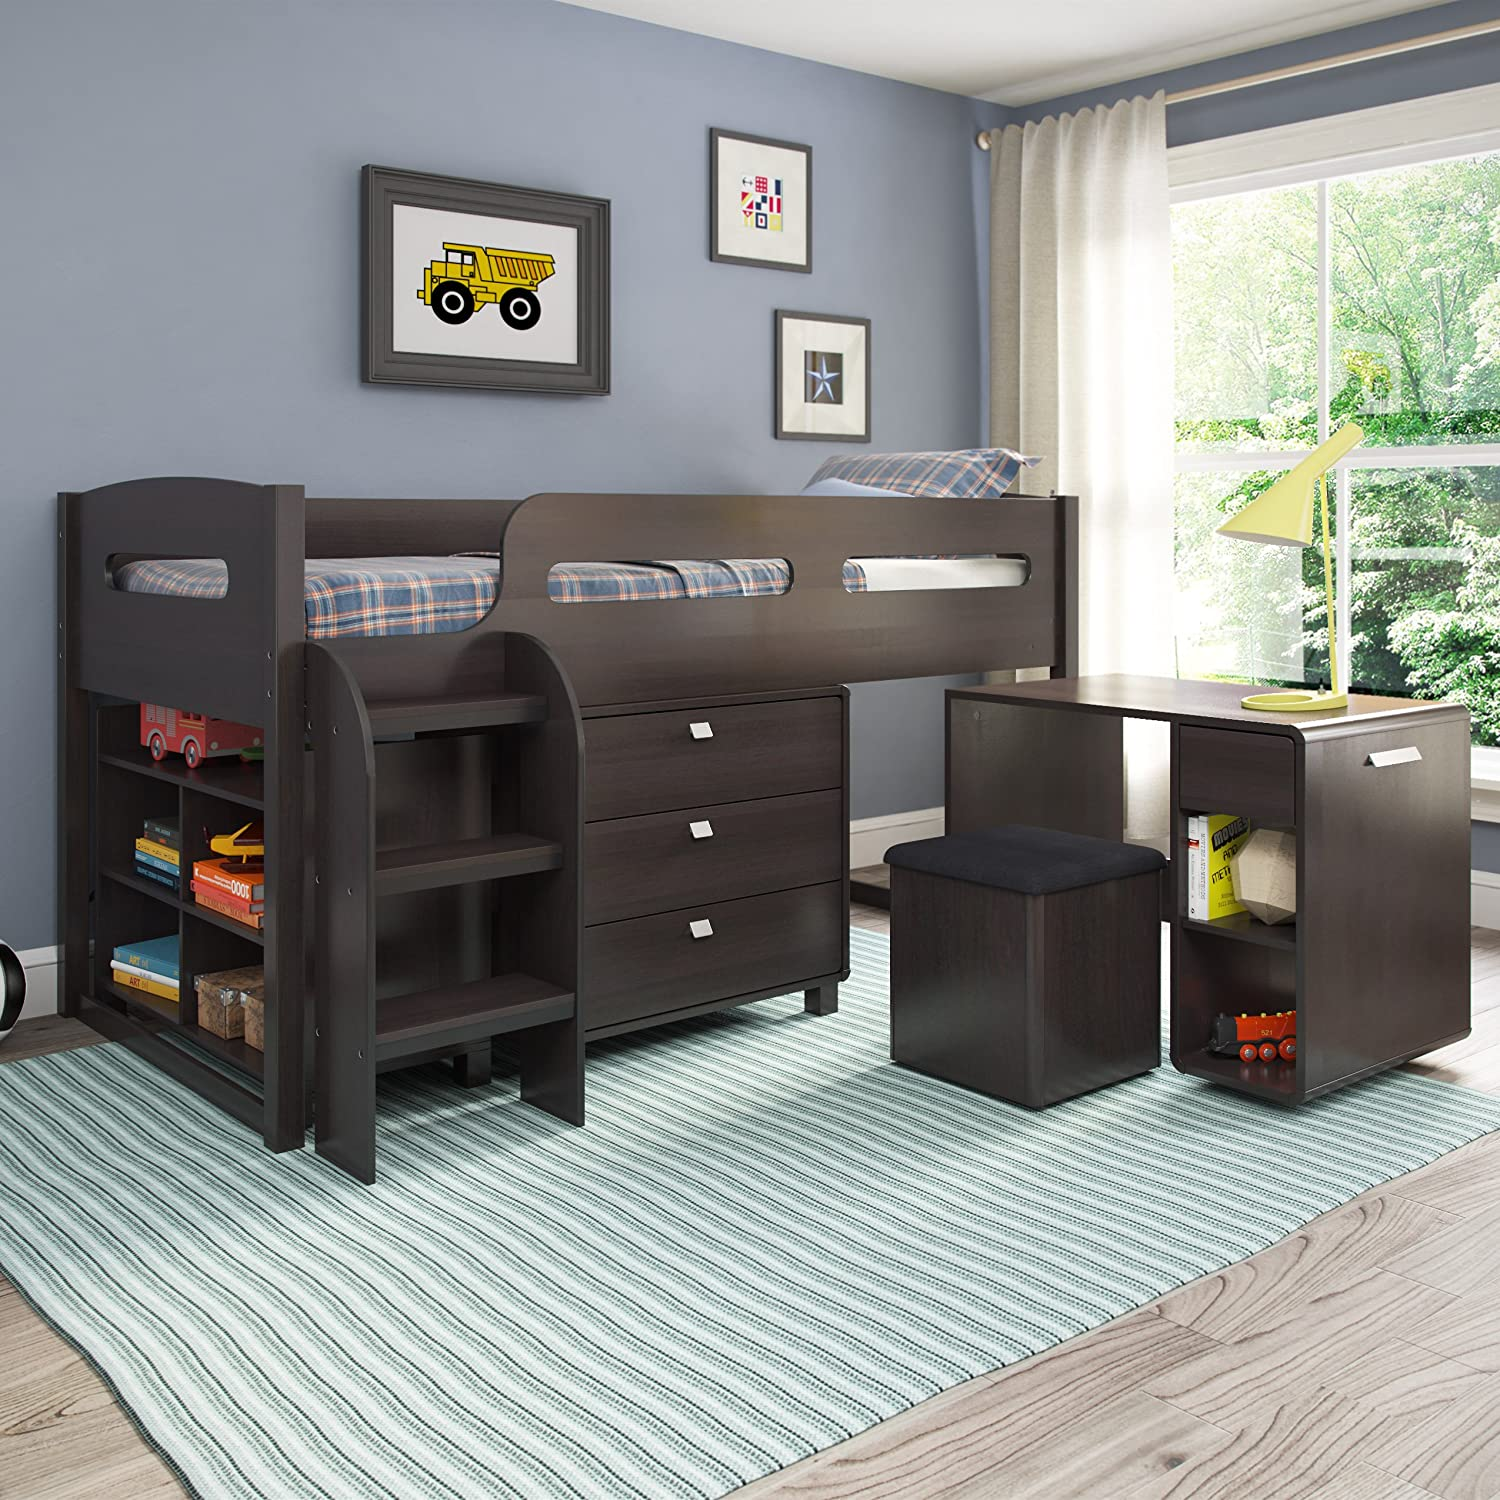 Amazon.com: CorLiving BMG-270-B 5-Piece Madison All-in-One Loft Bed ...